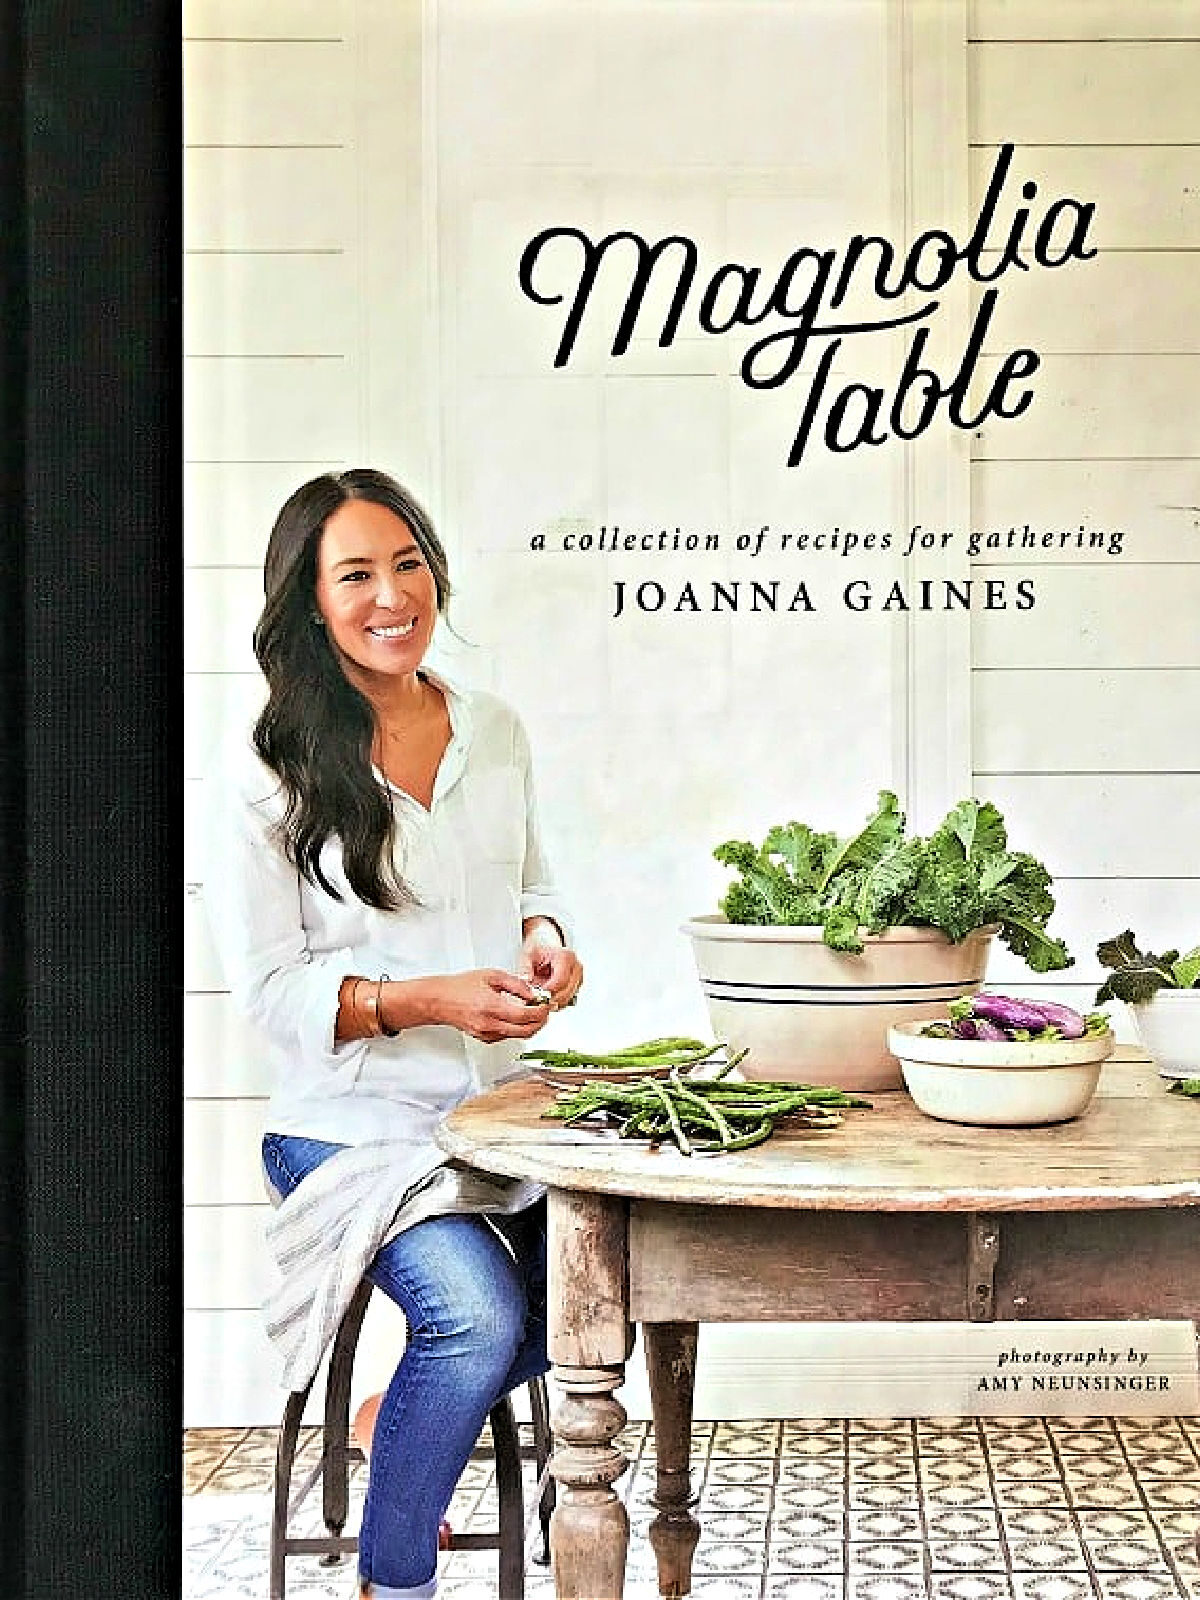 Magnolia Table cookbook with picture of woman shelling peas.